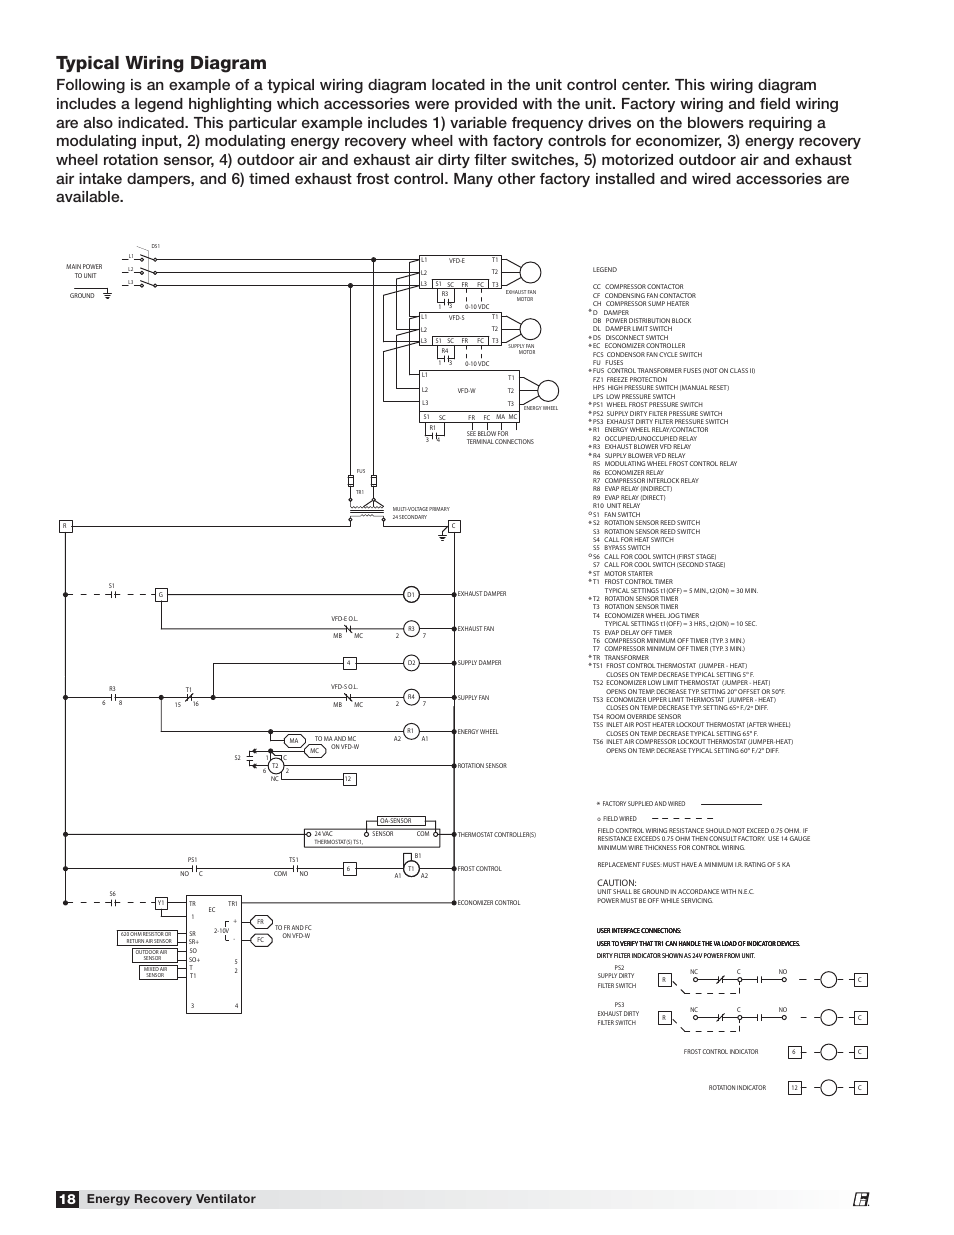 Typical Wiring Diagram Energy Recovery Ventilator Greenheck Fan Economizer 455924 Erv 522 User Manual Page 18 36